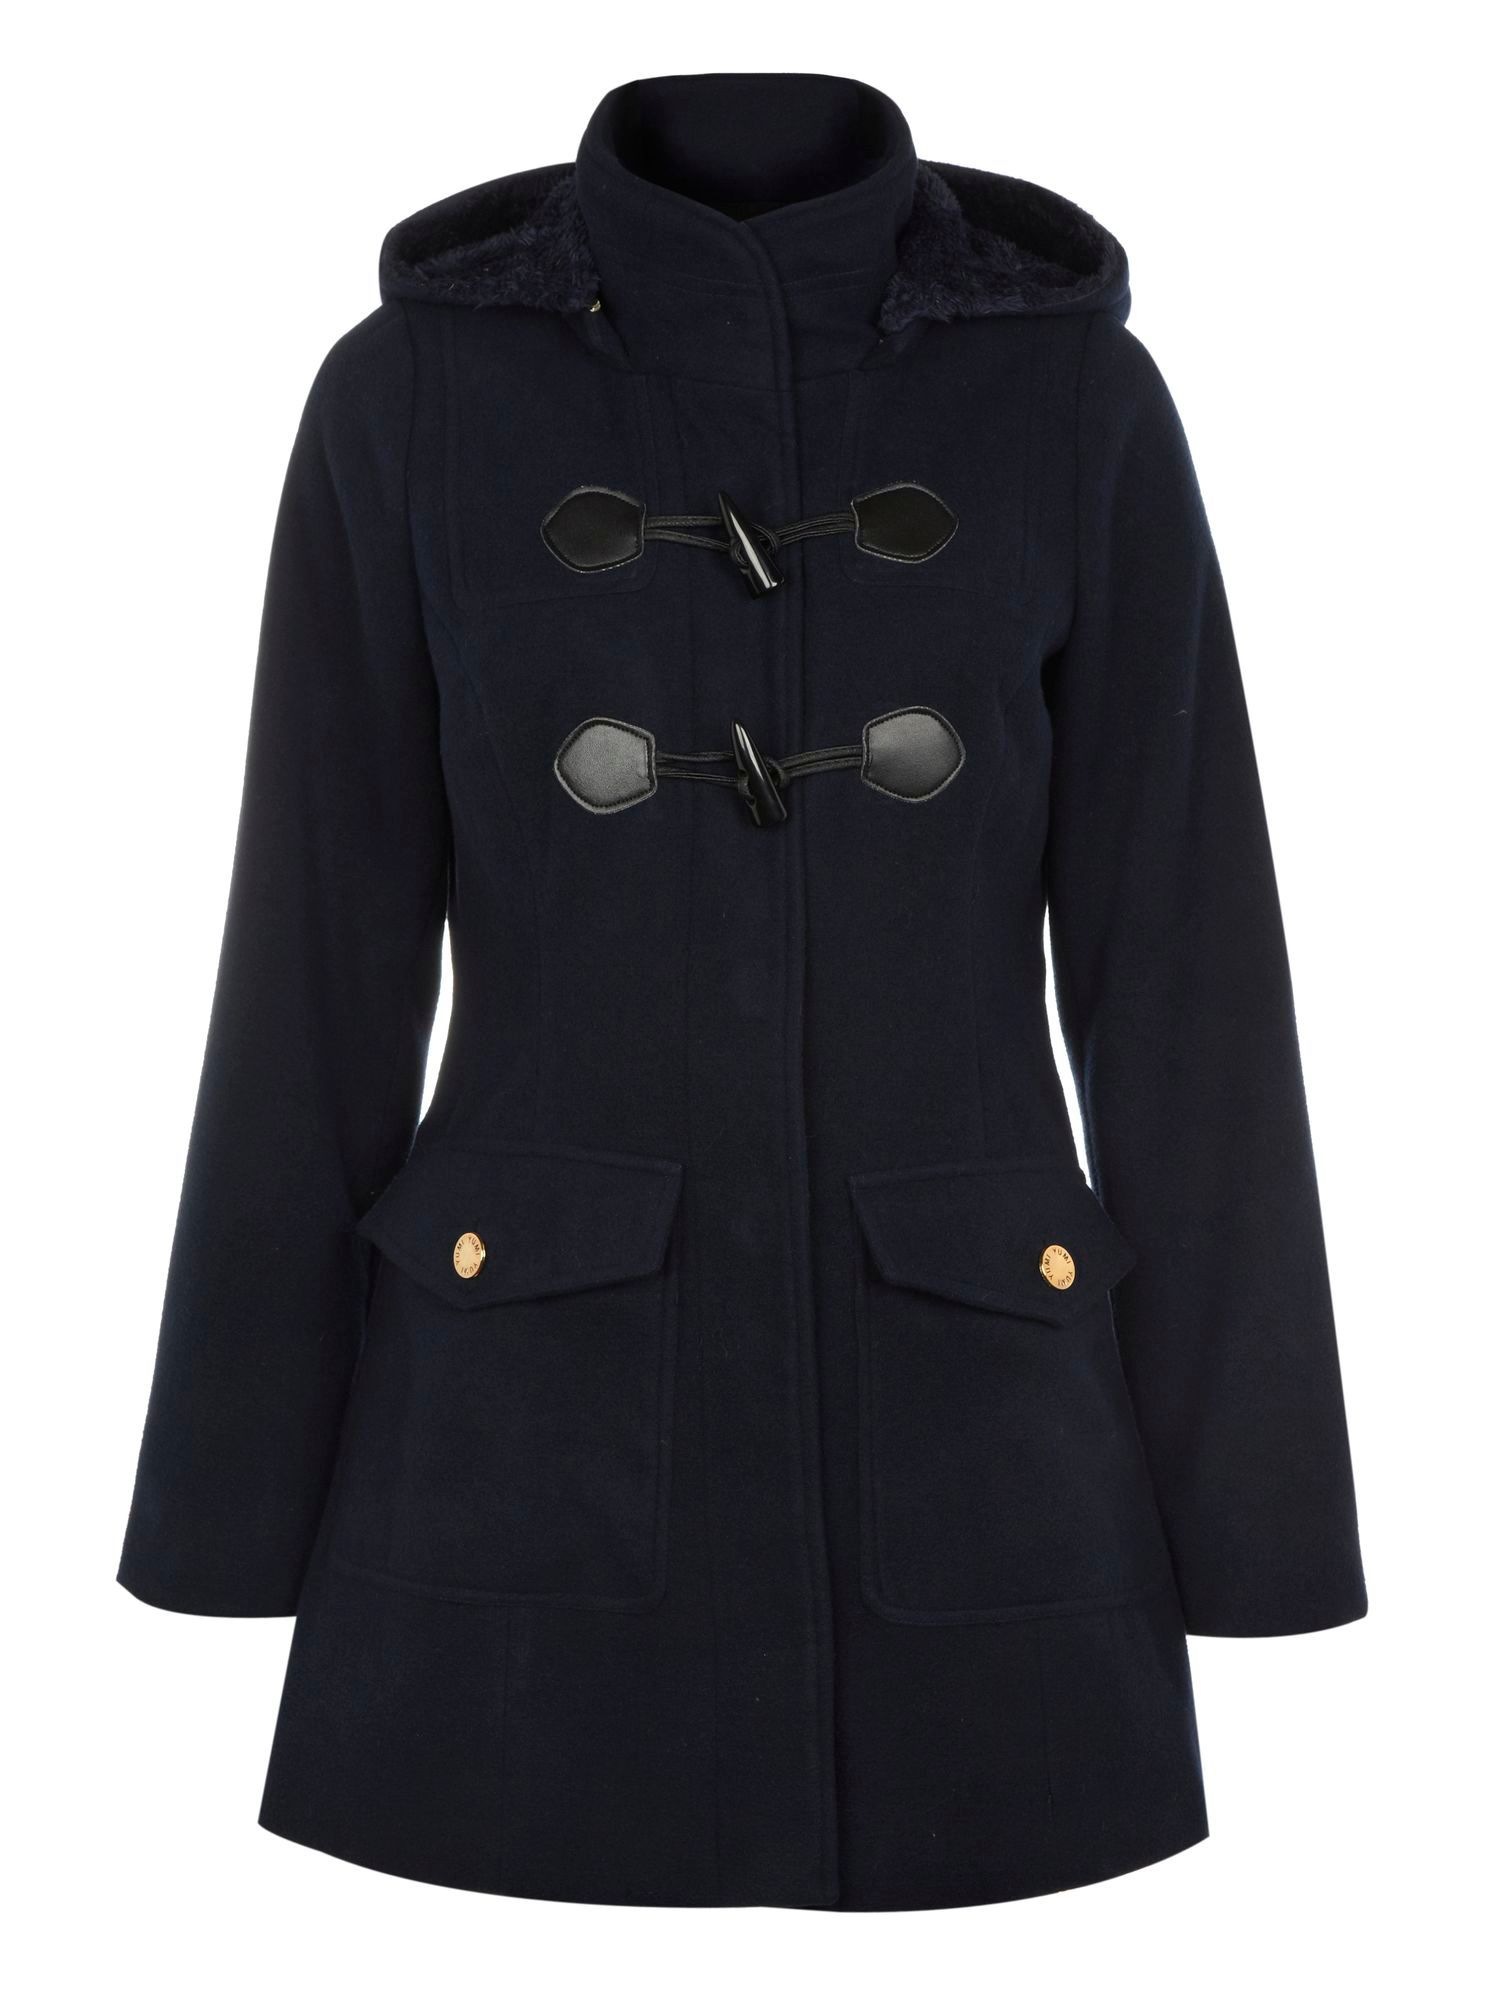 Duffle Coats For Women